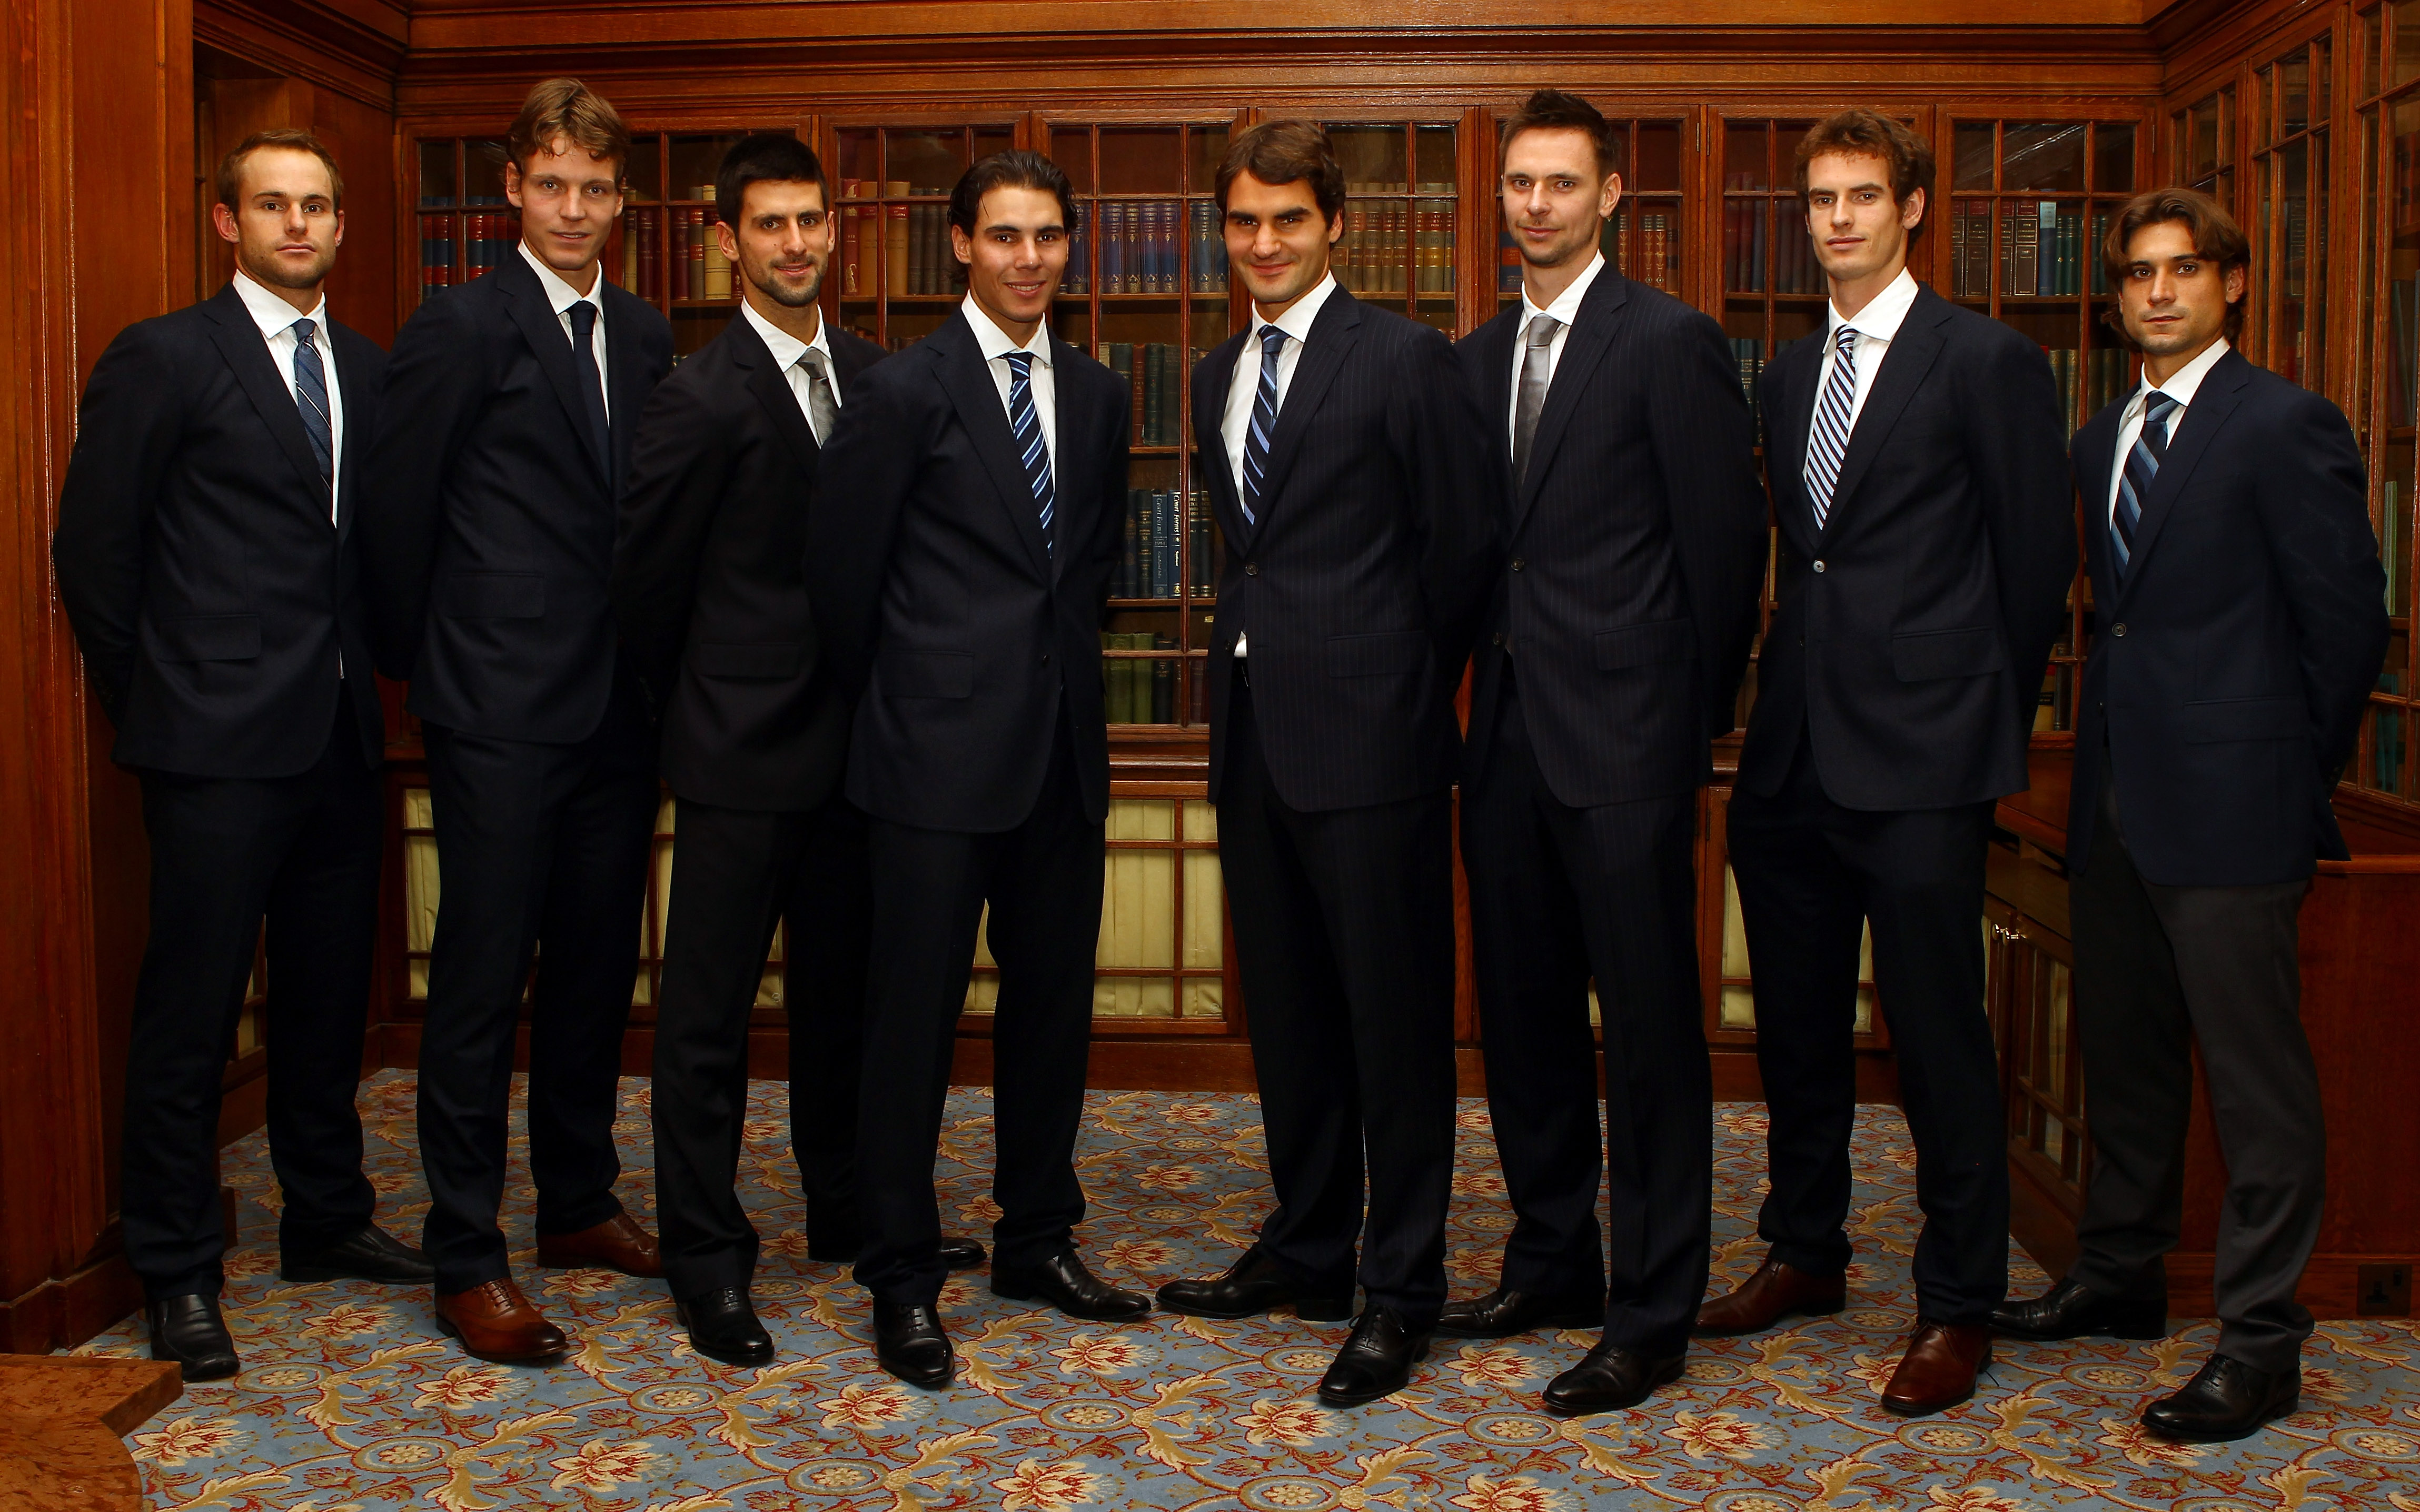 LONDON, ENGLAND - NOVEMBER 19:  (L-R)  Andy Roddick of USA, Tomas Berdych of Czech Republic, Novak Djokovic of Serbia, Rafael Nadal of Spain, Roger Federer of Switzerland, Robin Soderling of Sweden, Andy Murray of Great Britain, and David Ferrer of Spain